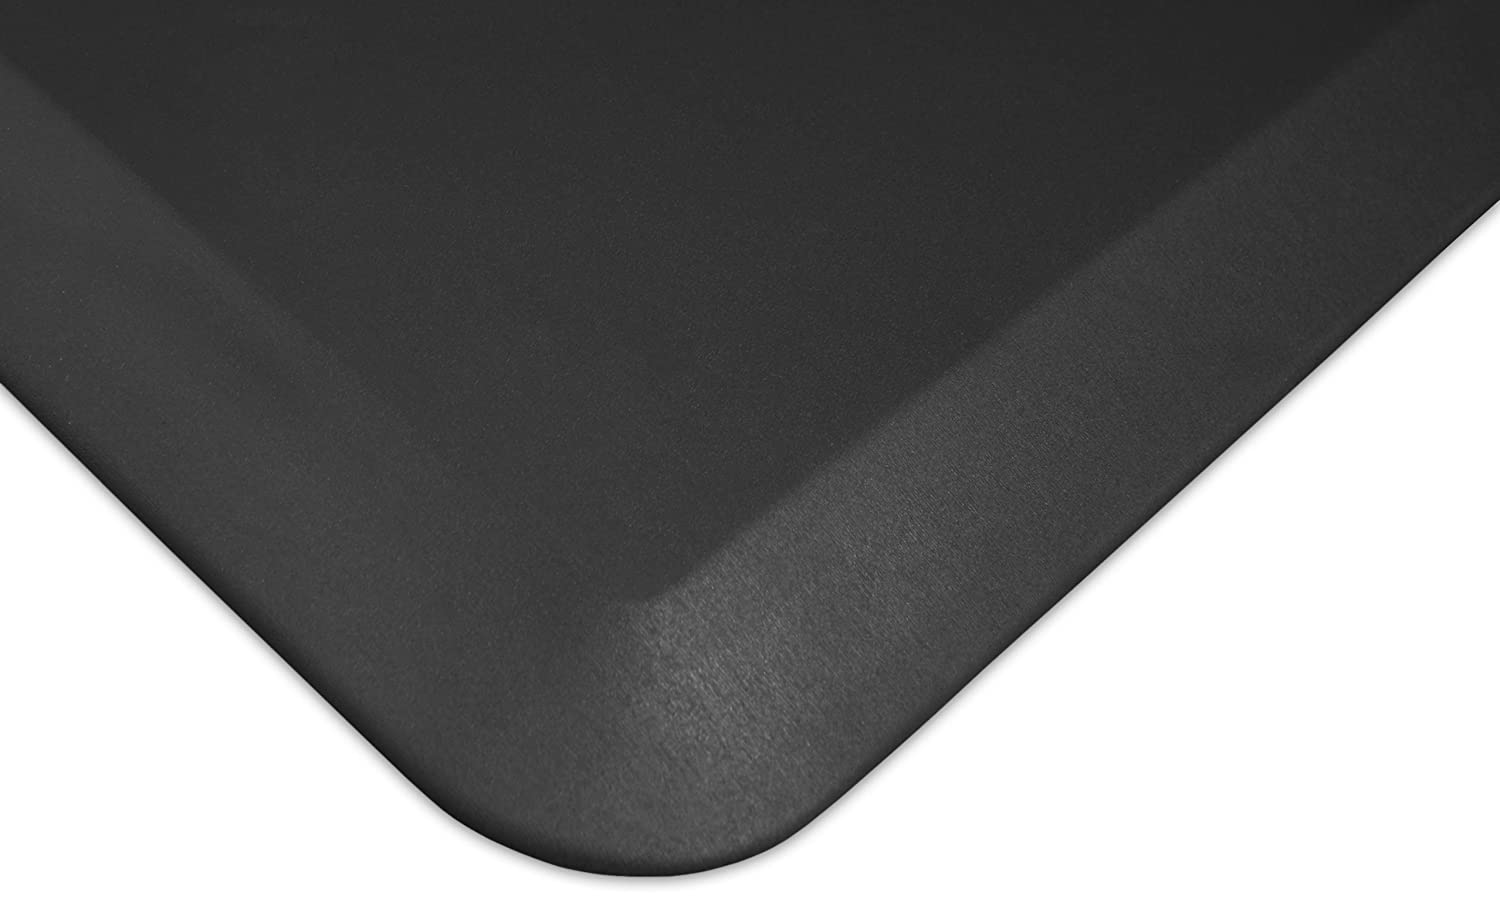 NewLife by GelPro Eco-Pro Advantage Mat, 18x30-Inch, Black Let' s Gel Inc 816825010359